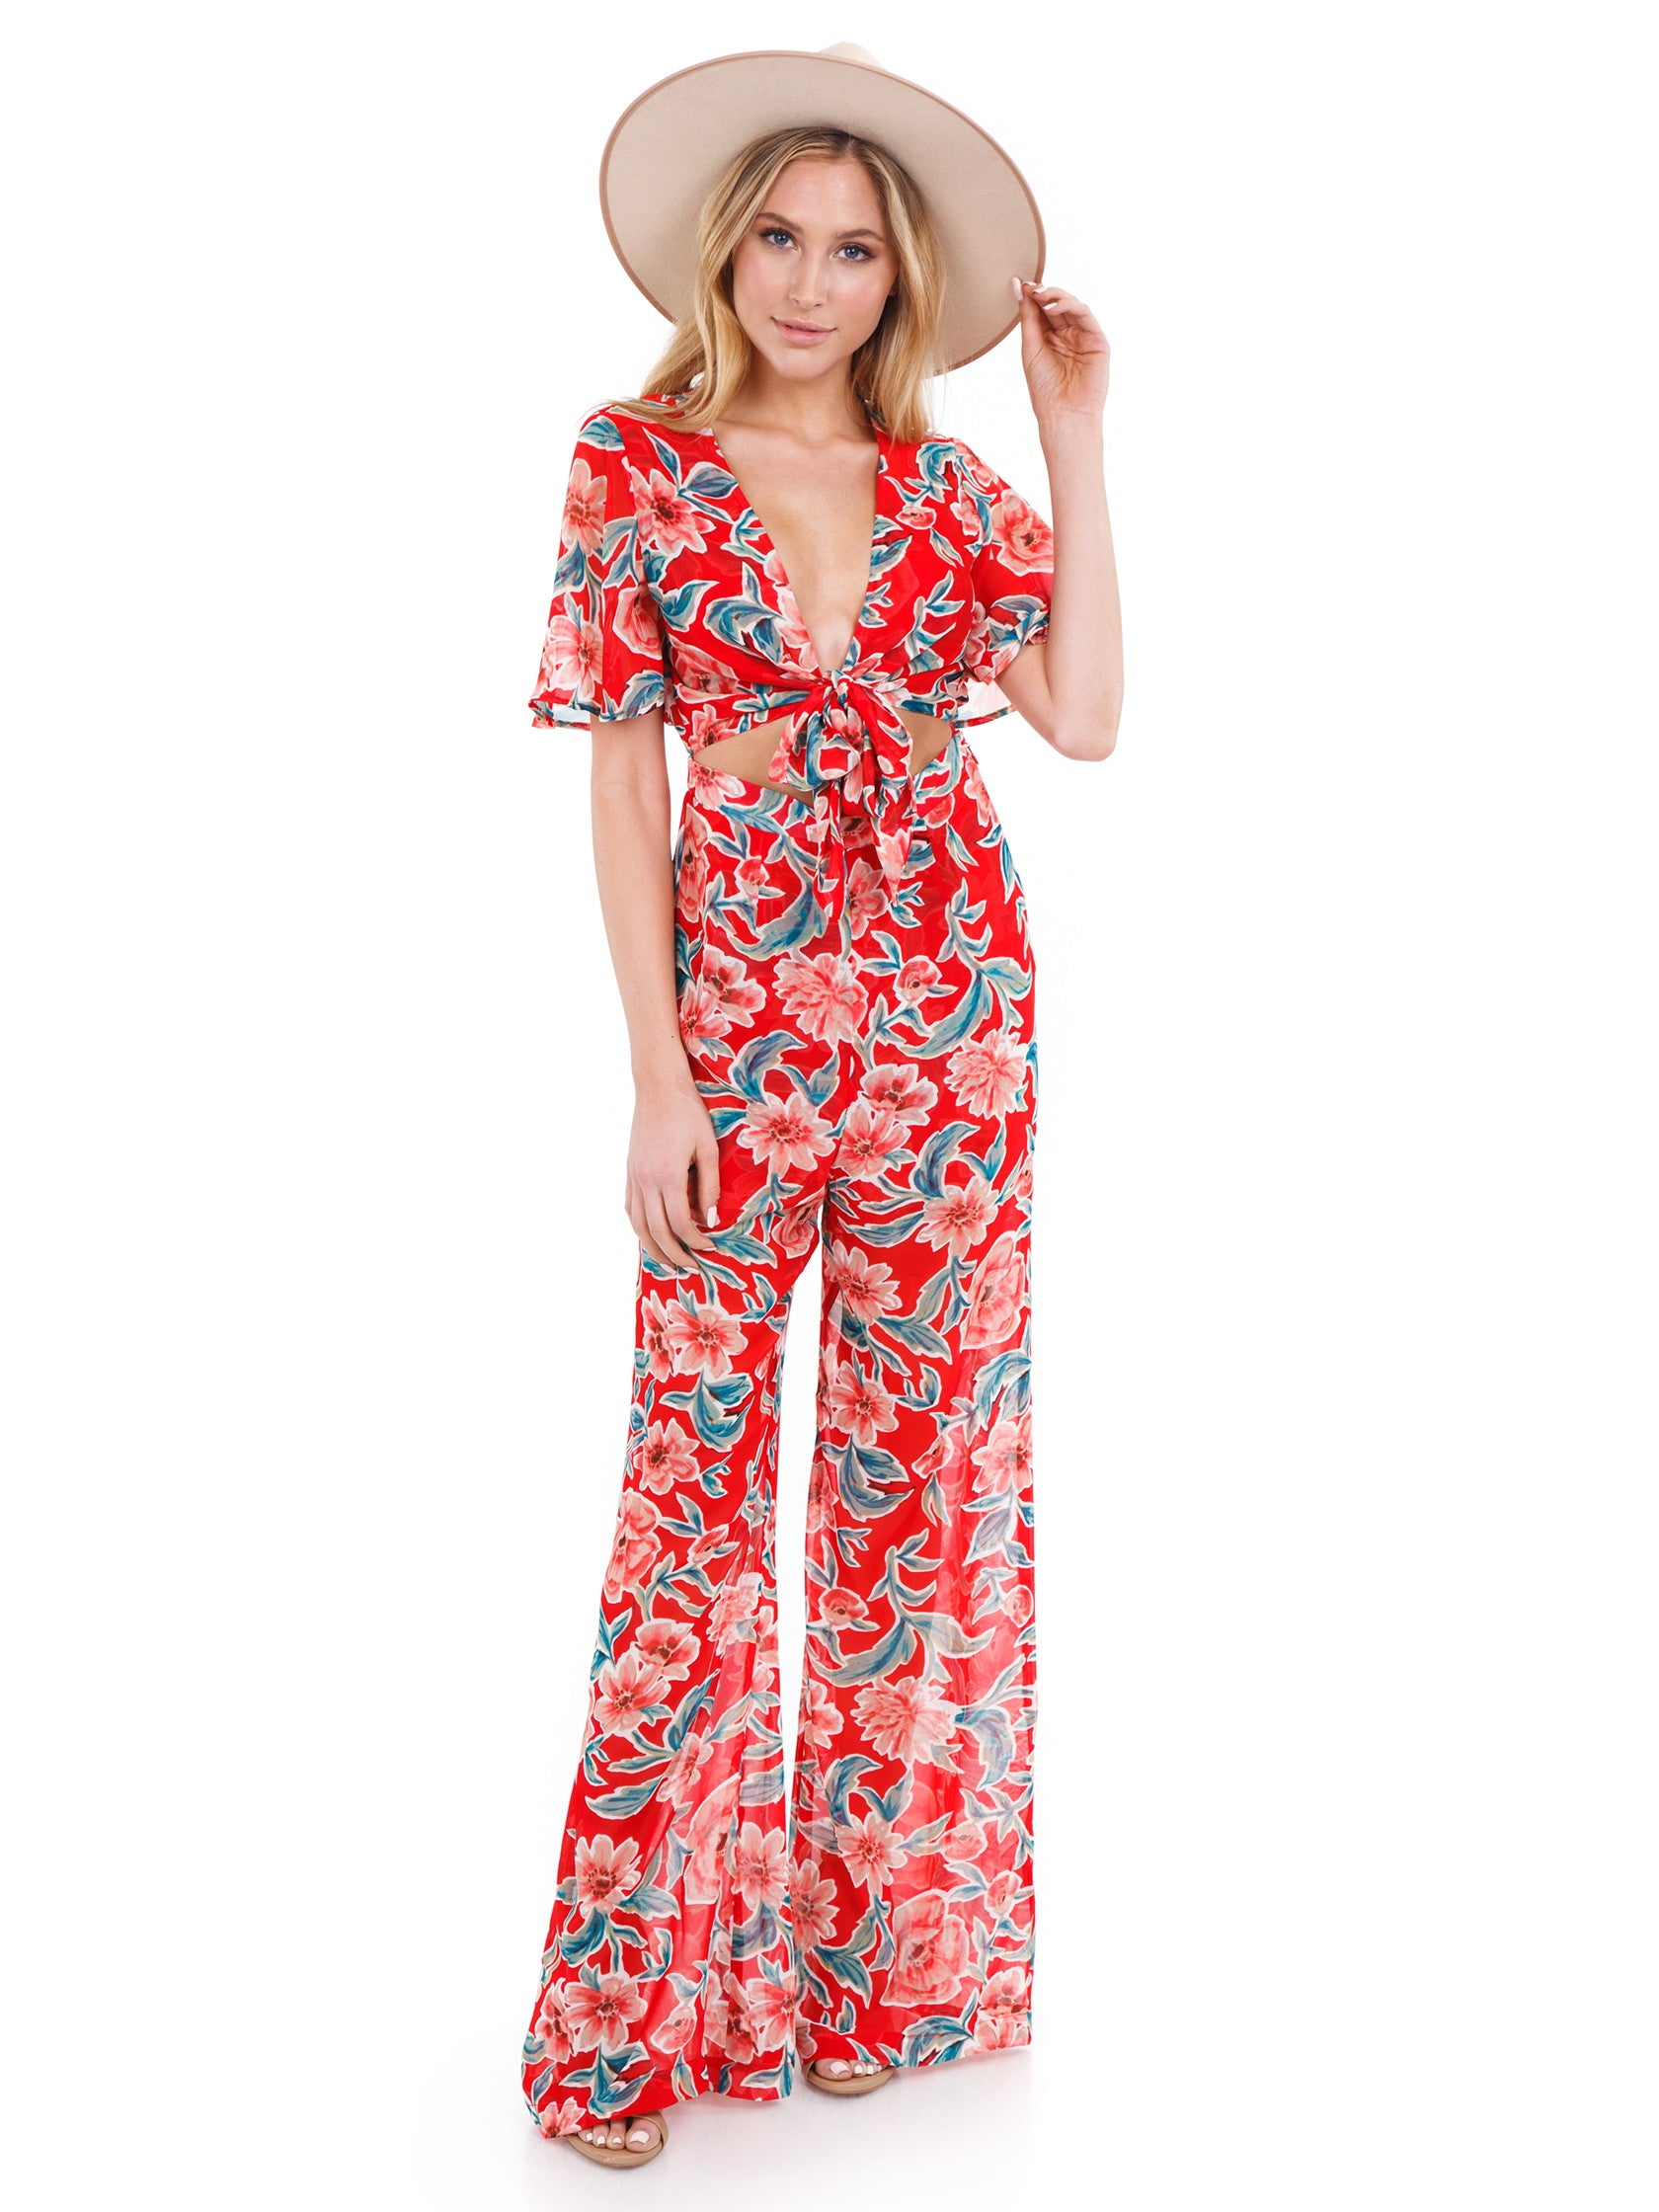 Women outfit in a jumpsuit rental from Show Me Your Mumu called Jenna Jumpsuit